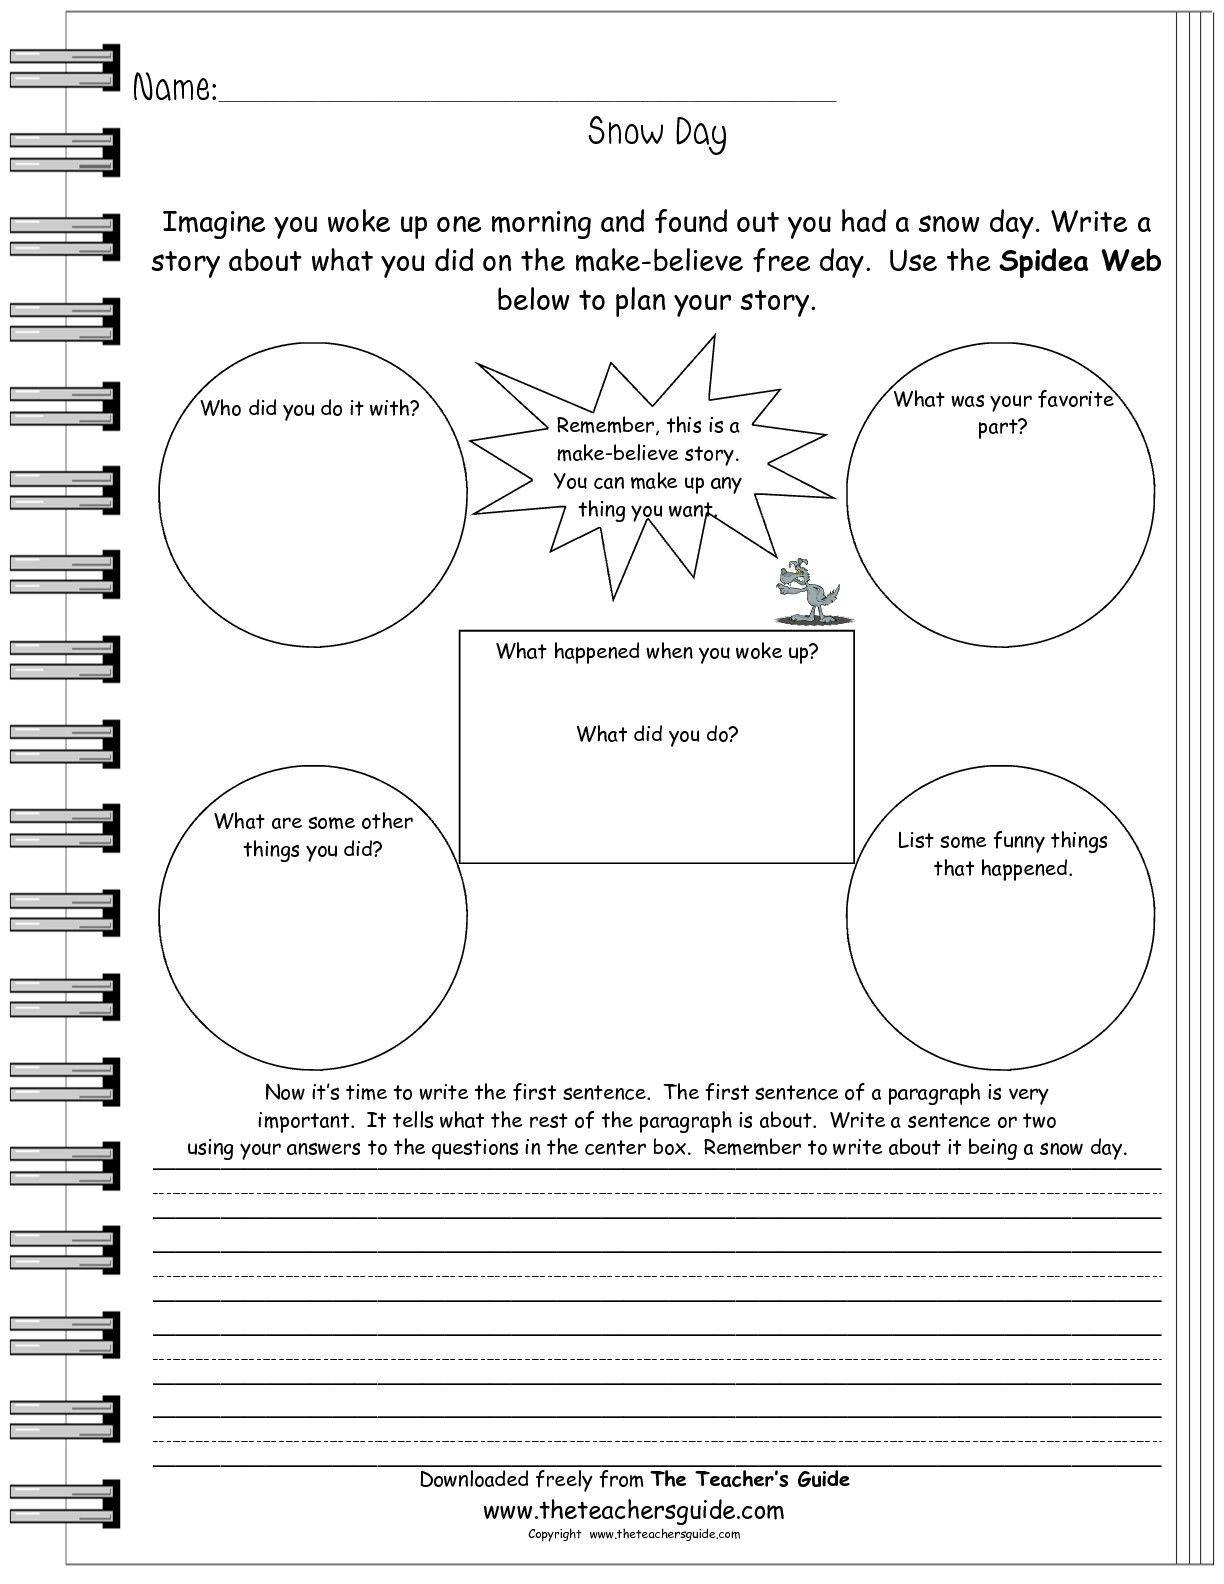 Snow Day Writing Prompt Worksheet